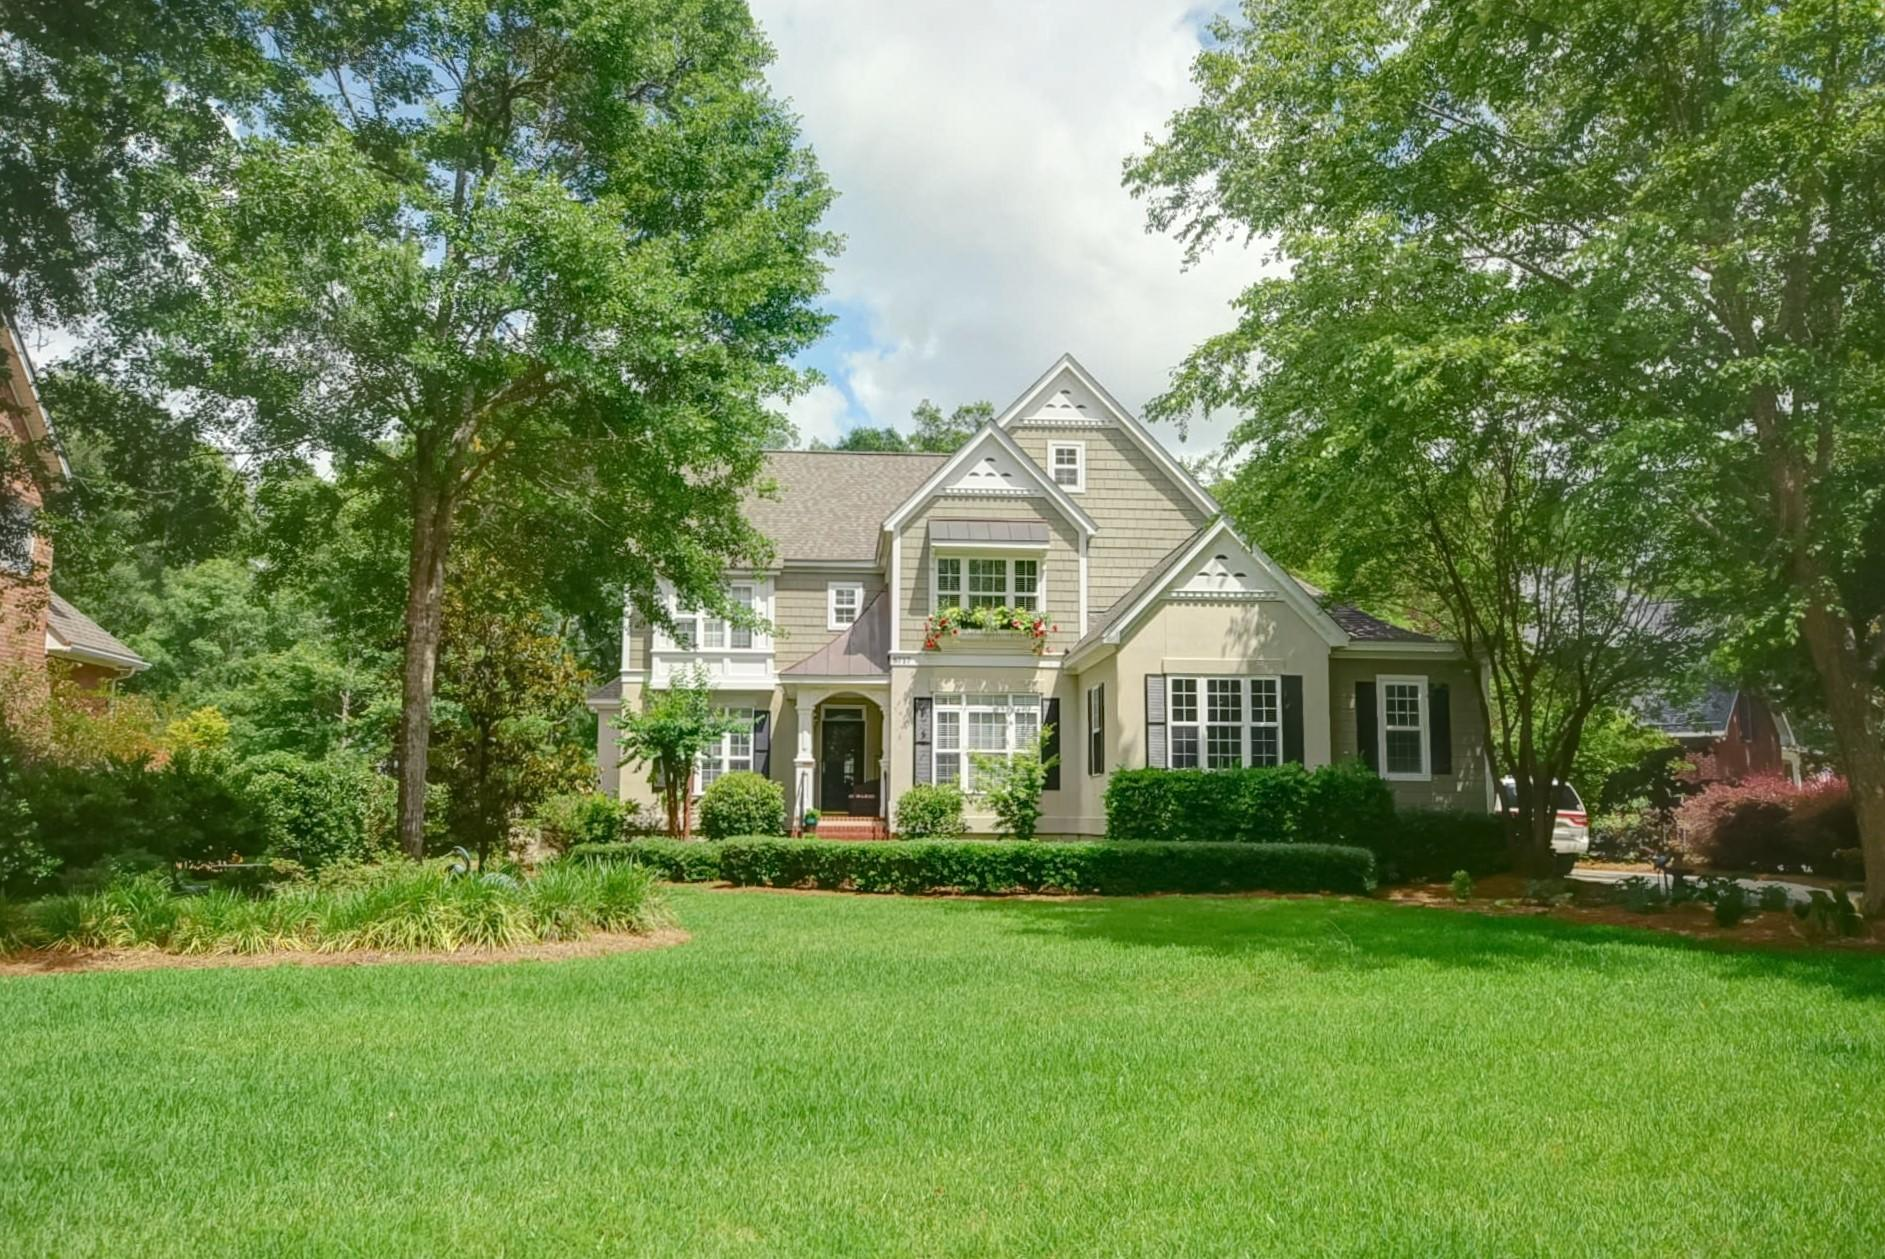 Photo of 8717 E Fairway Woods Dr, North Charleston, SC 29420